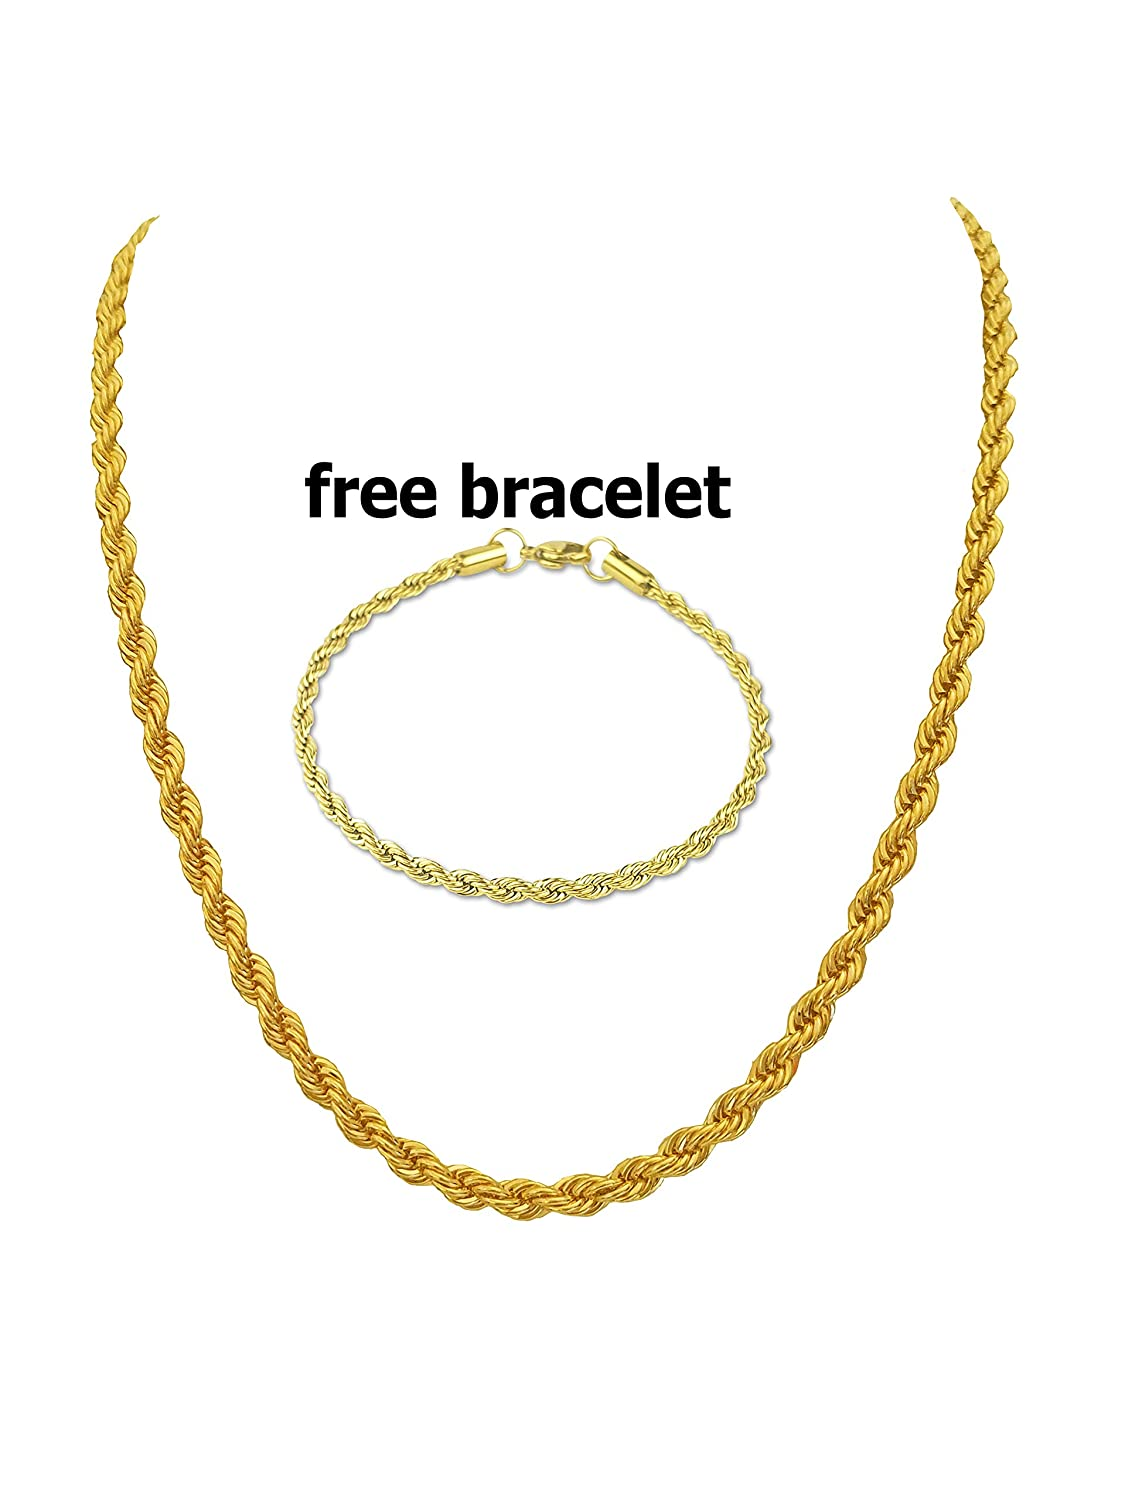 BLING CULTURE Free Bracelet Life Time Warranty 1mm 2mm 3mm 4mm 5mm 7mm Gold Rope Chain Necklace for Men Women